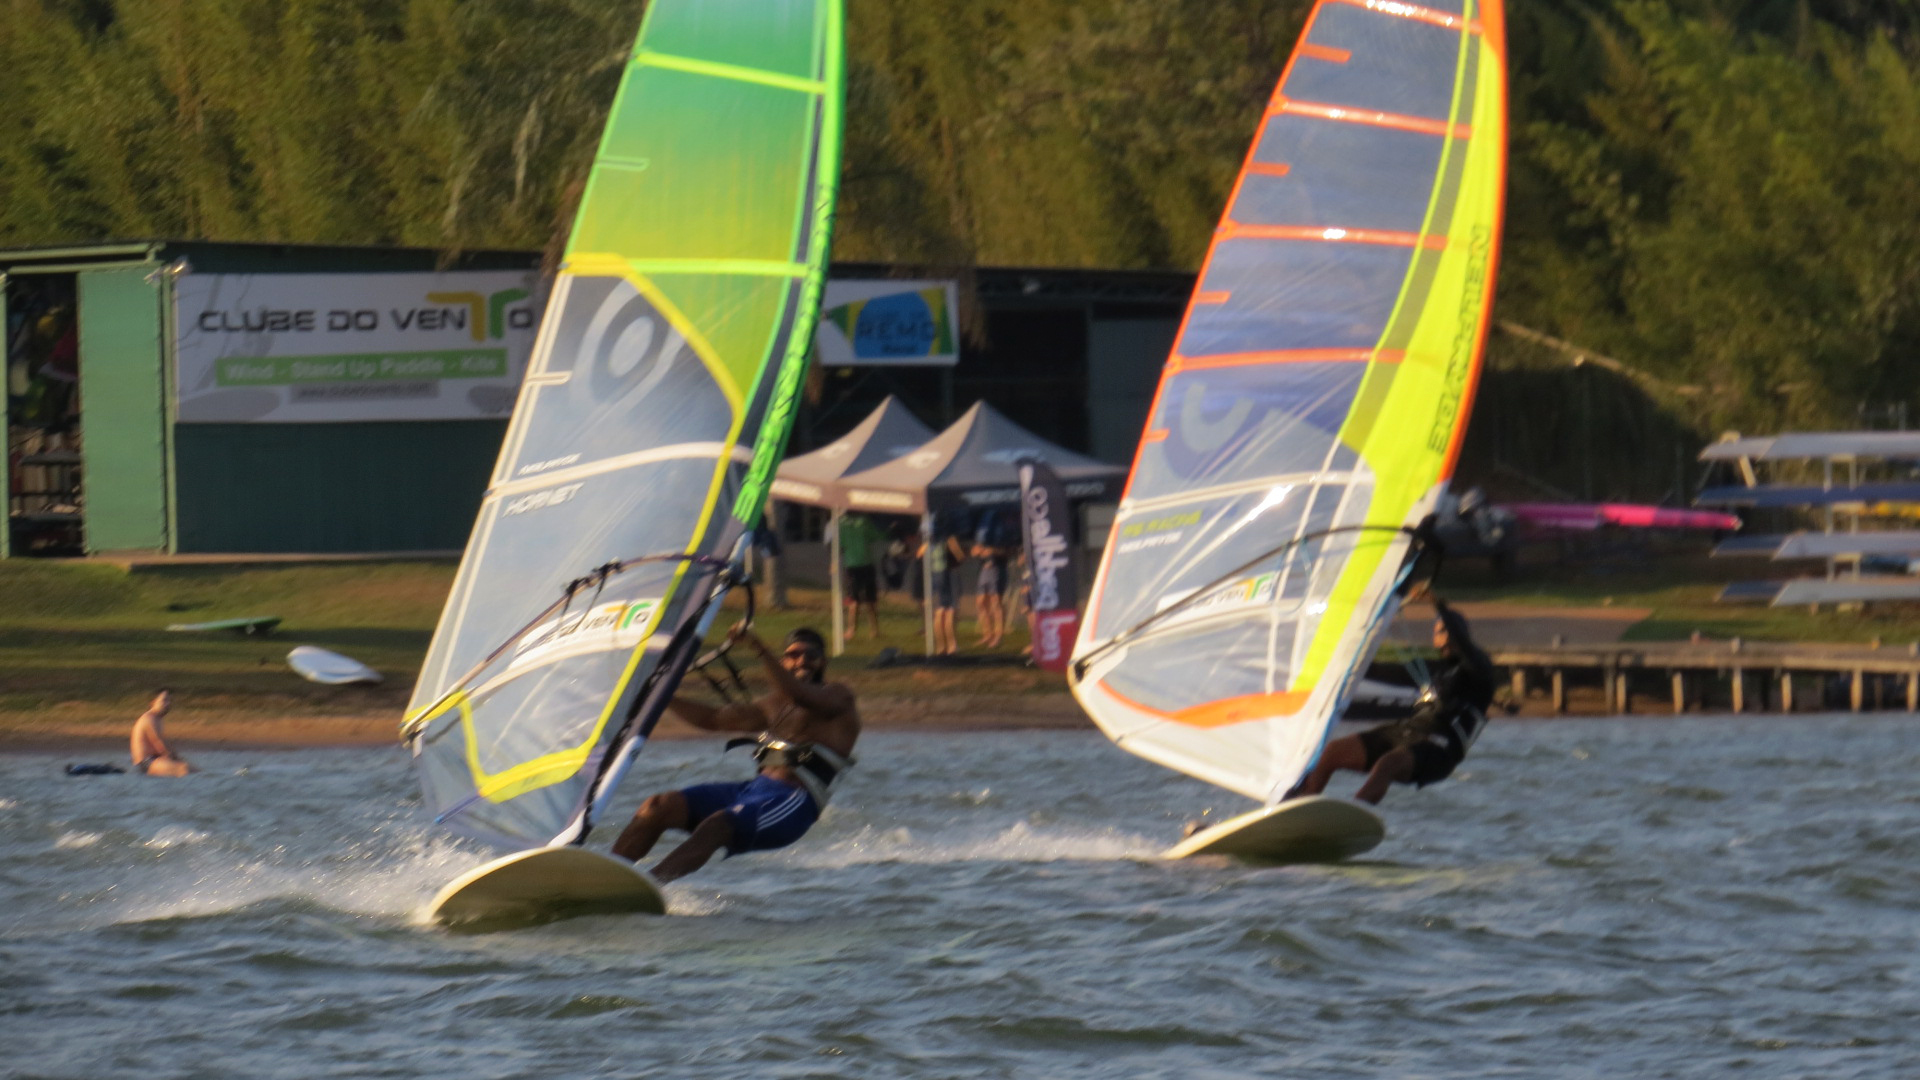 Windsurf no Clube do Vento